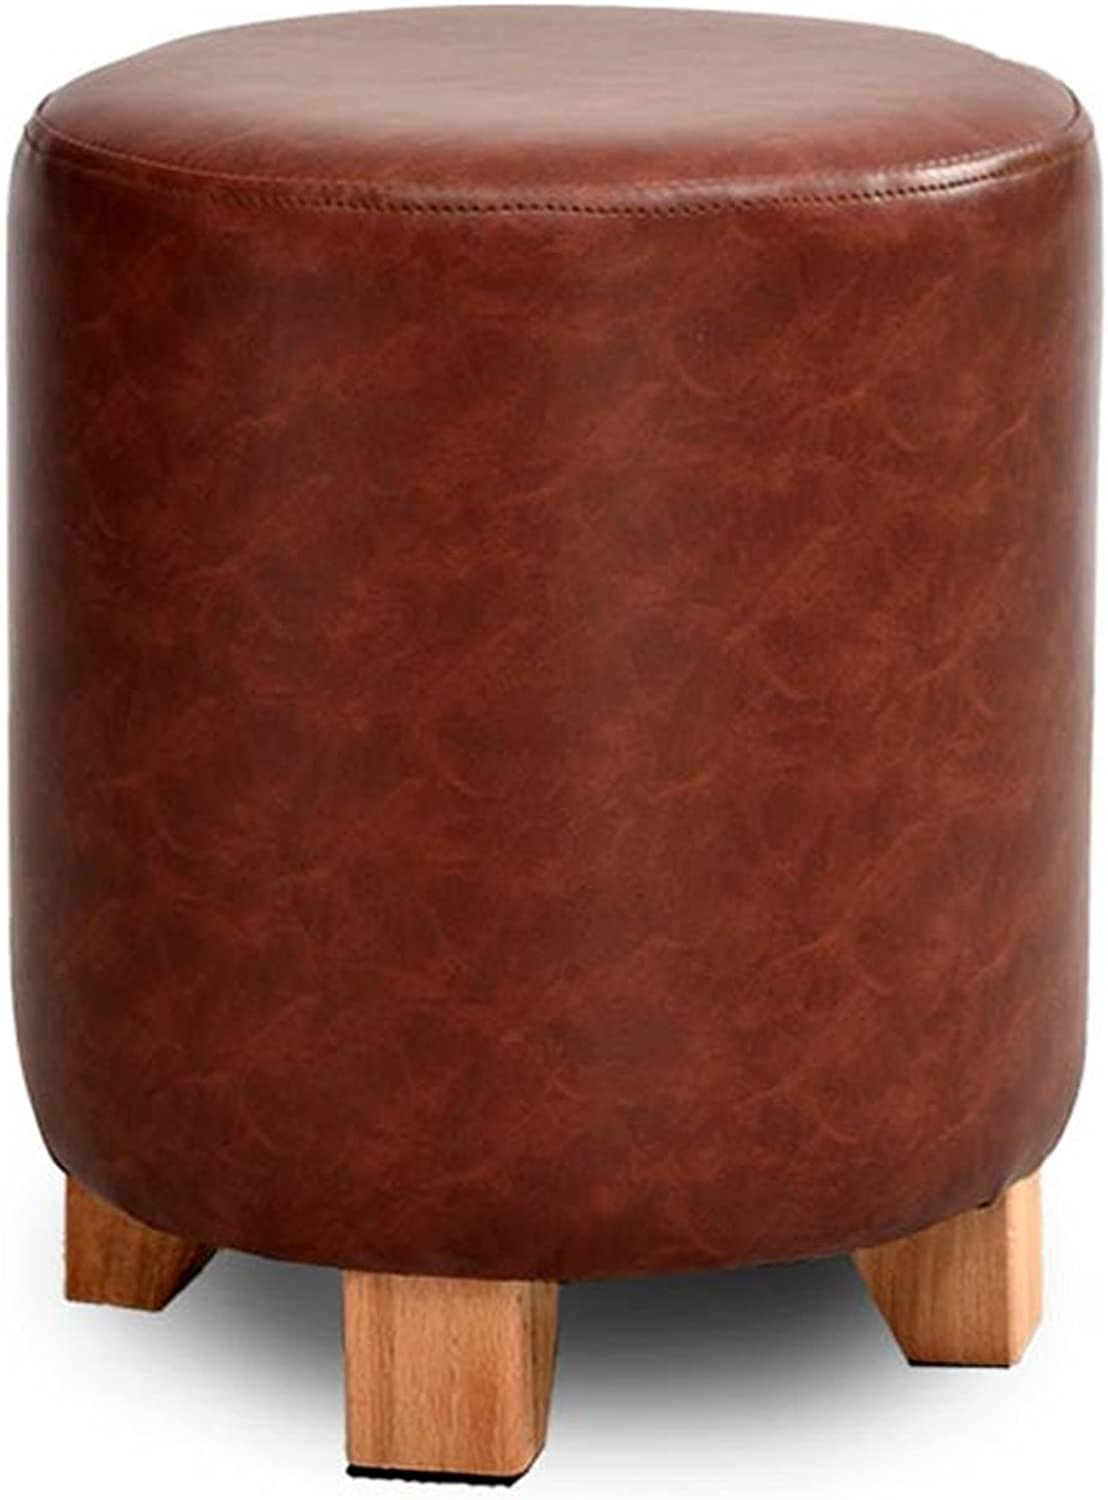 Solid wood stool Upholstered Footsto sofa stool small stool stool fashion dressing stool creative shoes stool shoes stool soft sedentary comfortable not tired ( color   Brown , Size   35cm )